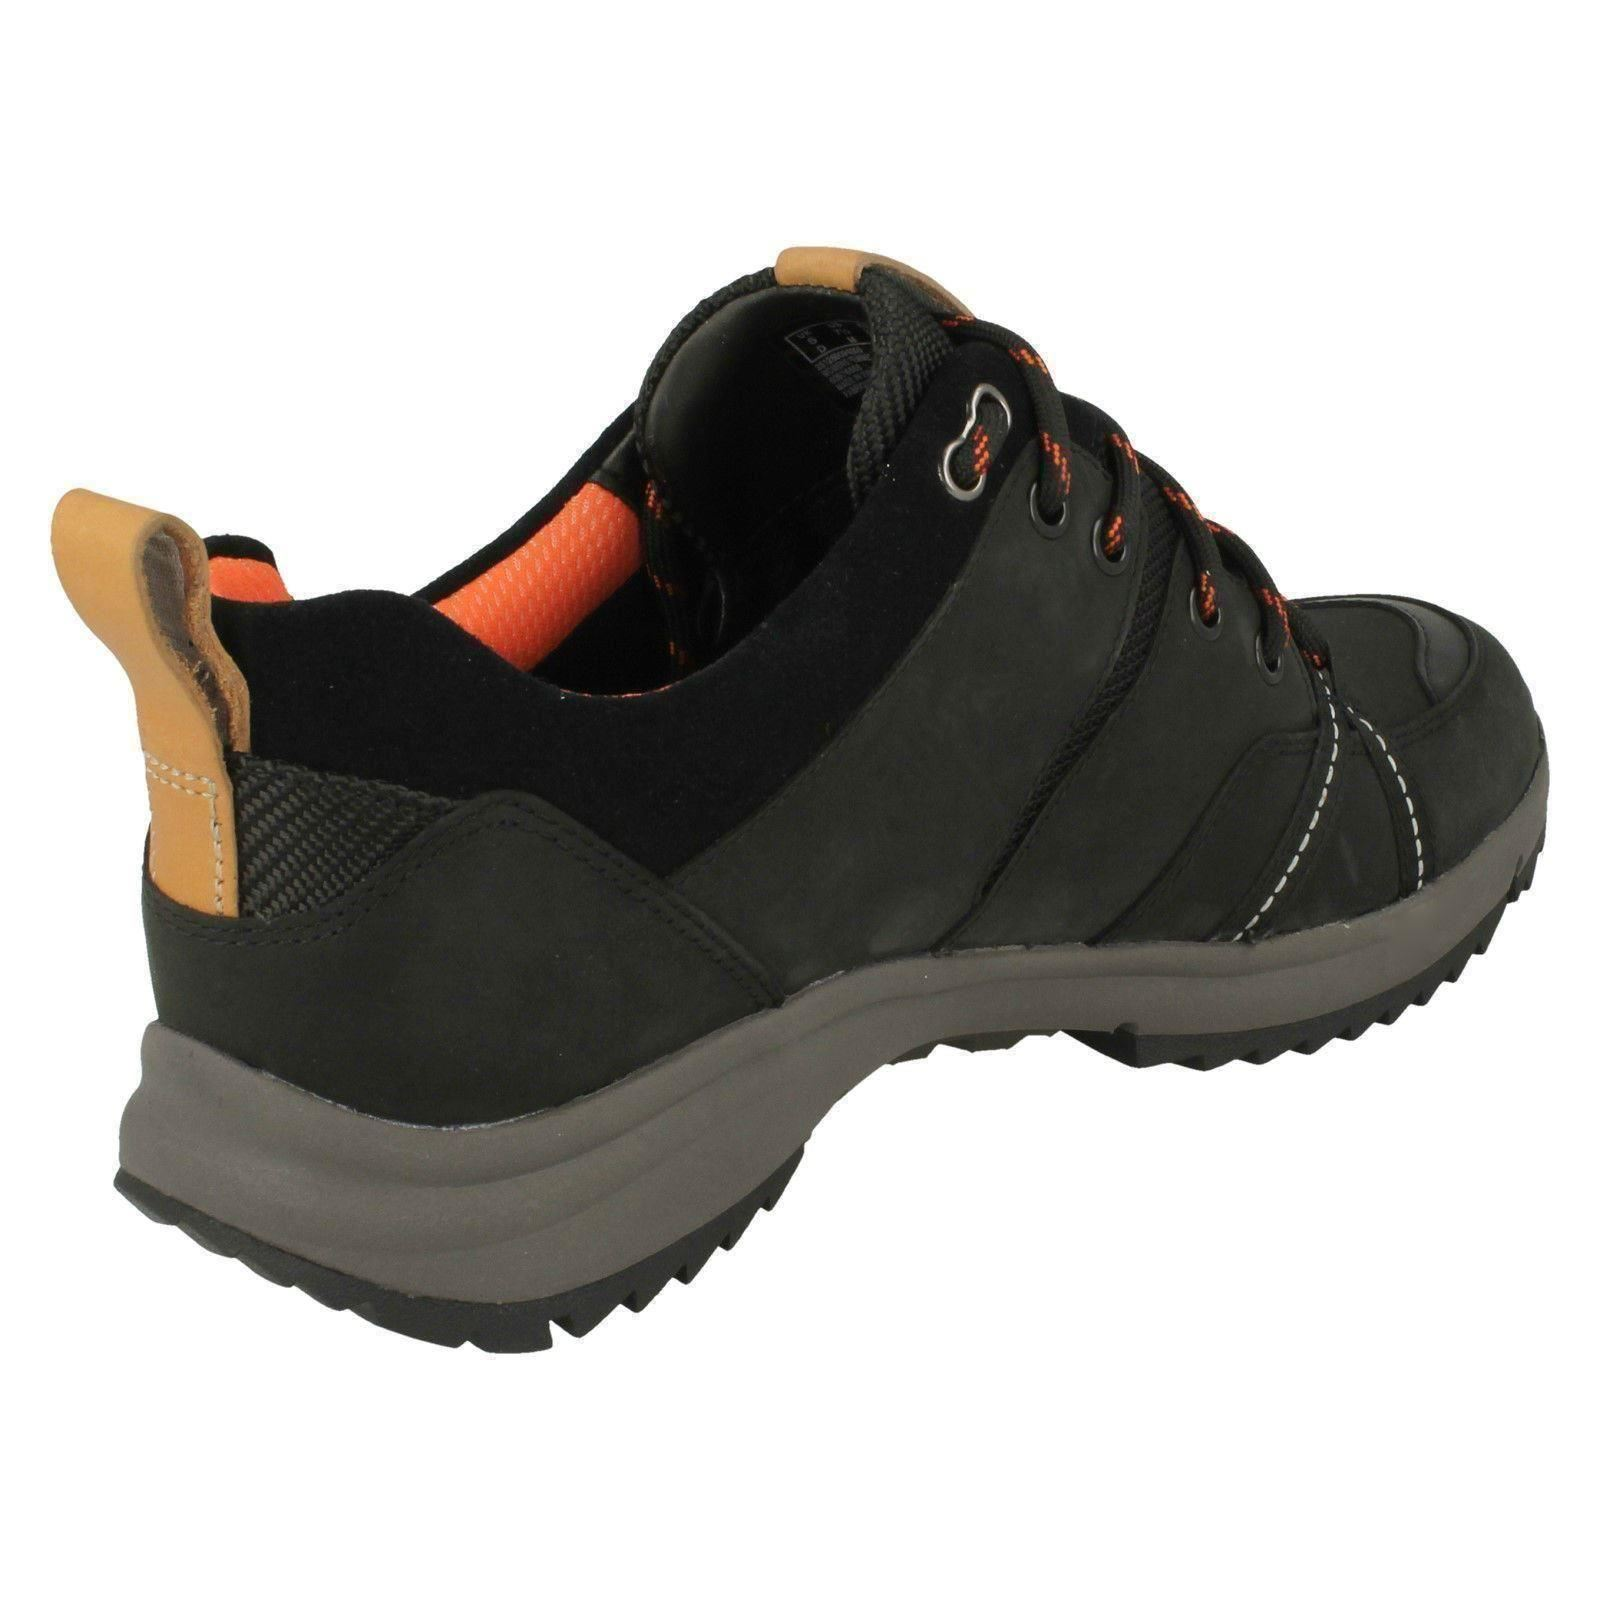 Ladies Clarks Trainer Style Lace Up Fastening Leather Shoes /'Tri Trek Gtx/'